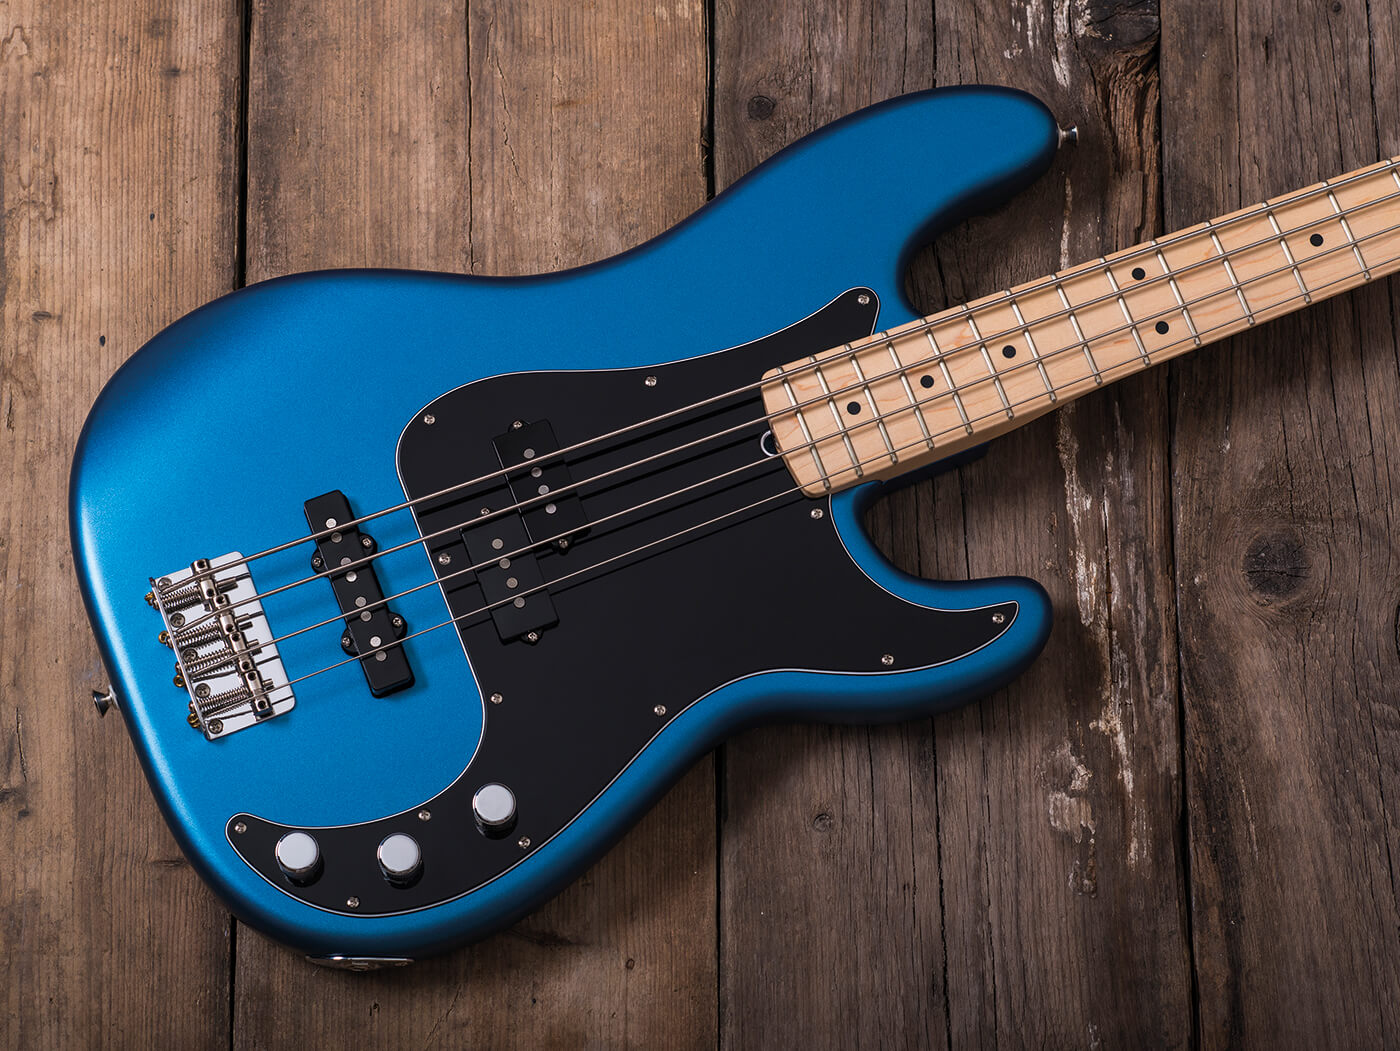 Fender 2019 American Performer Precision Bass Review